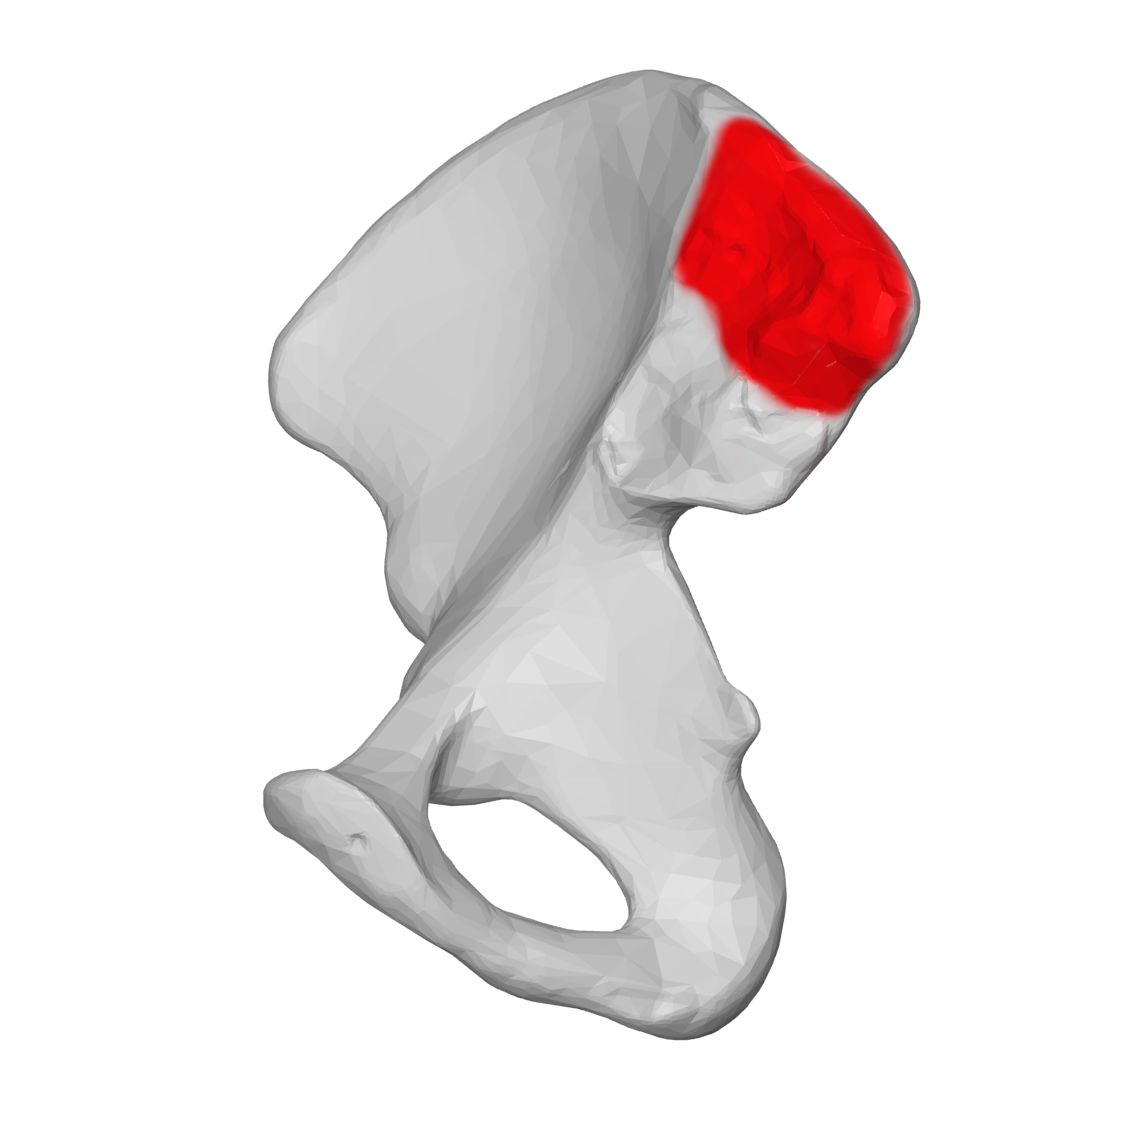 File:Iliac tuberosity 04 medial view (Right hip bone).png ...